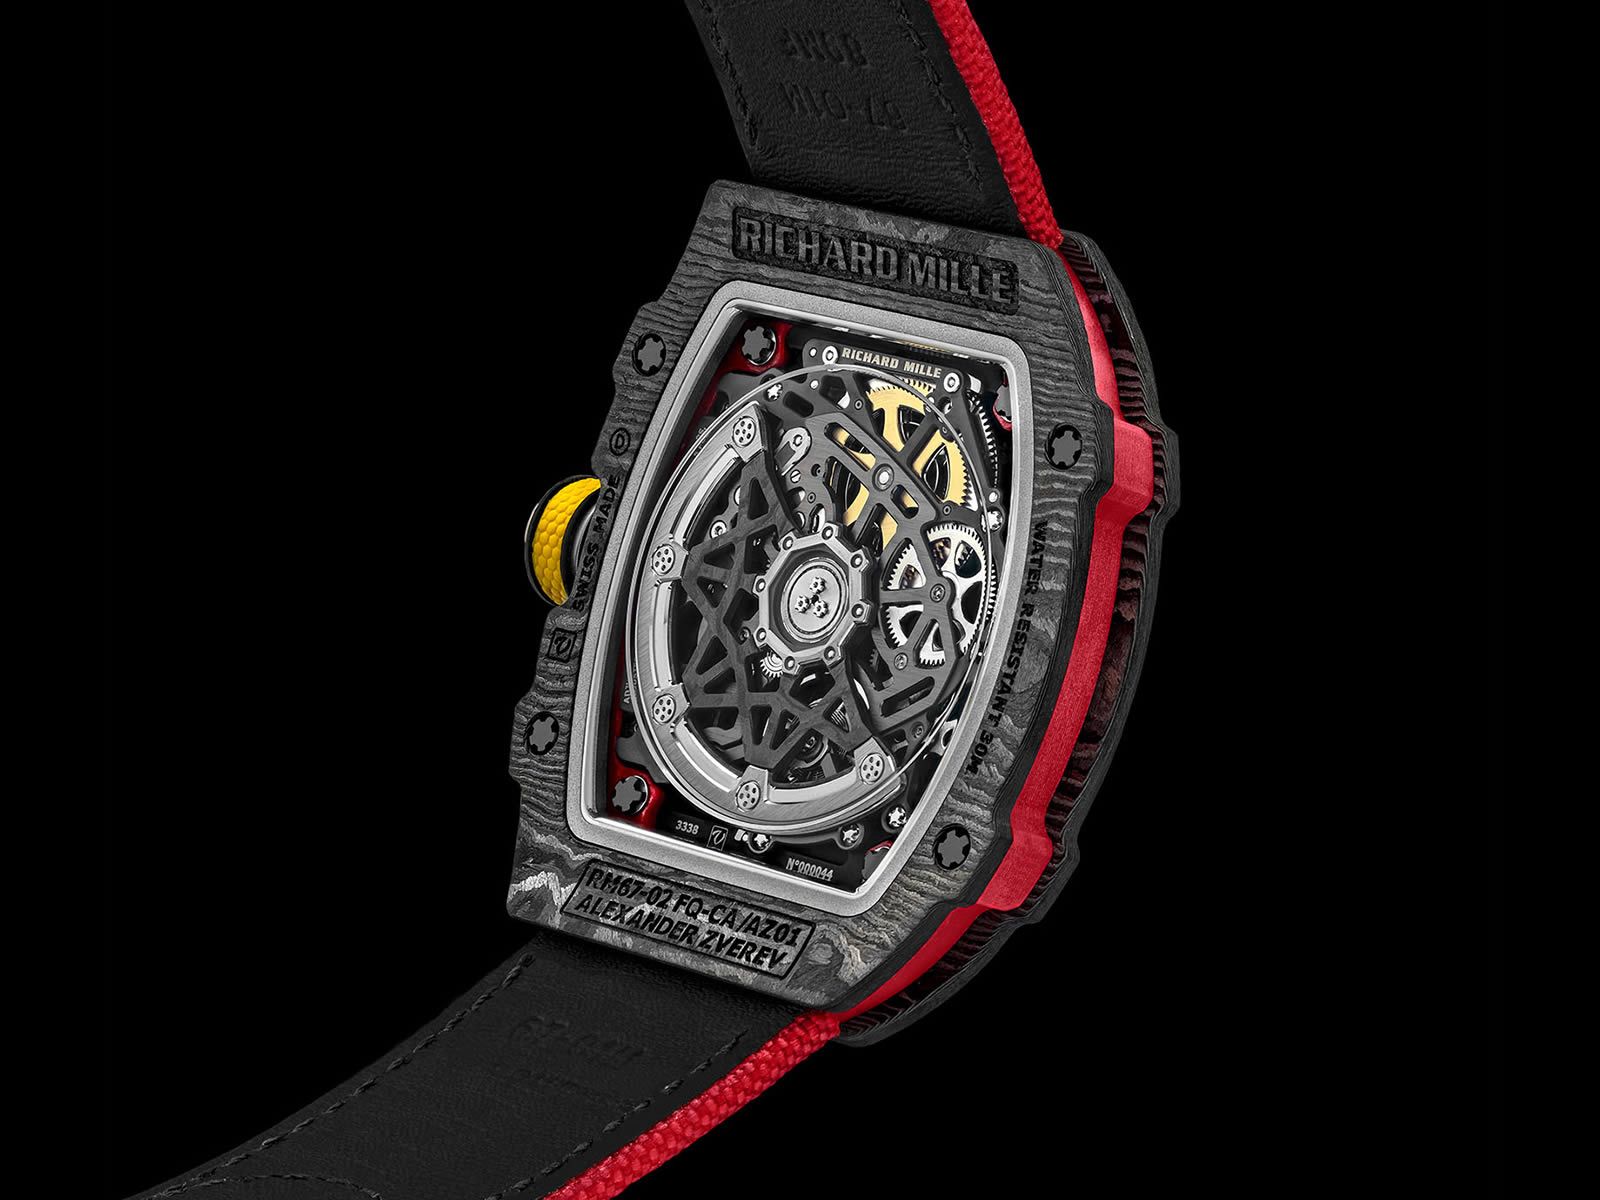 rm-67-02-richard-mille-new-versions-8-.jpg